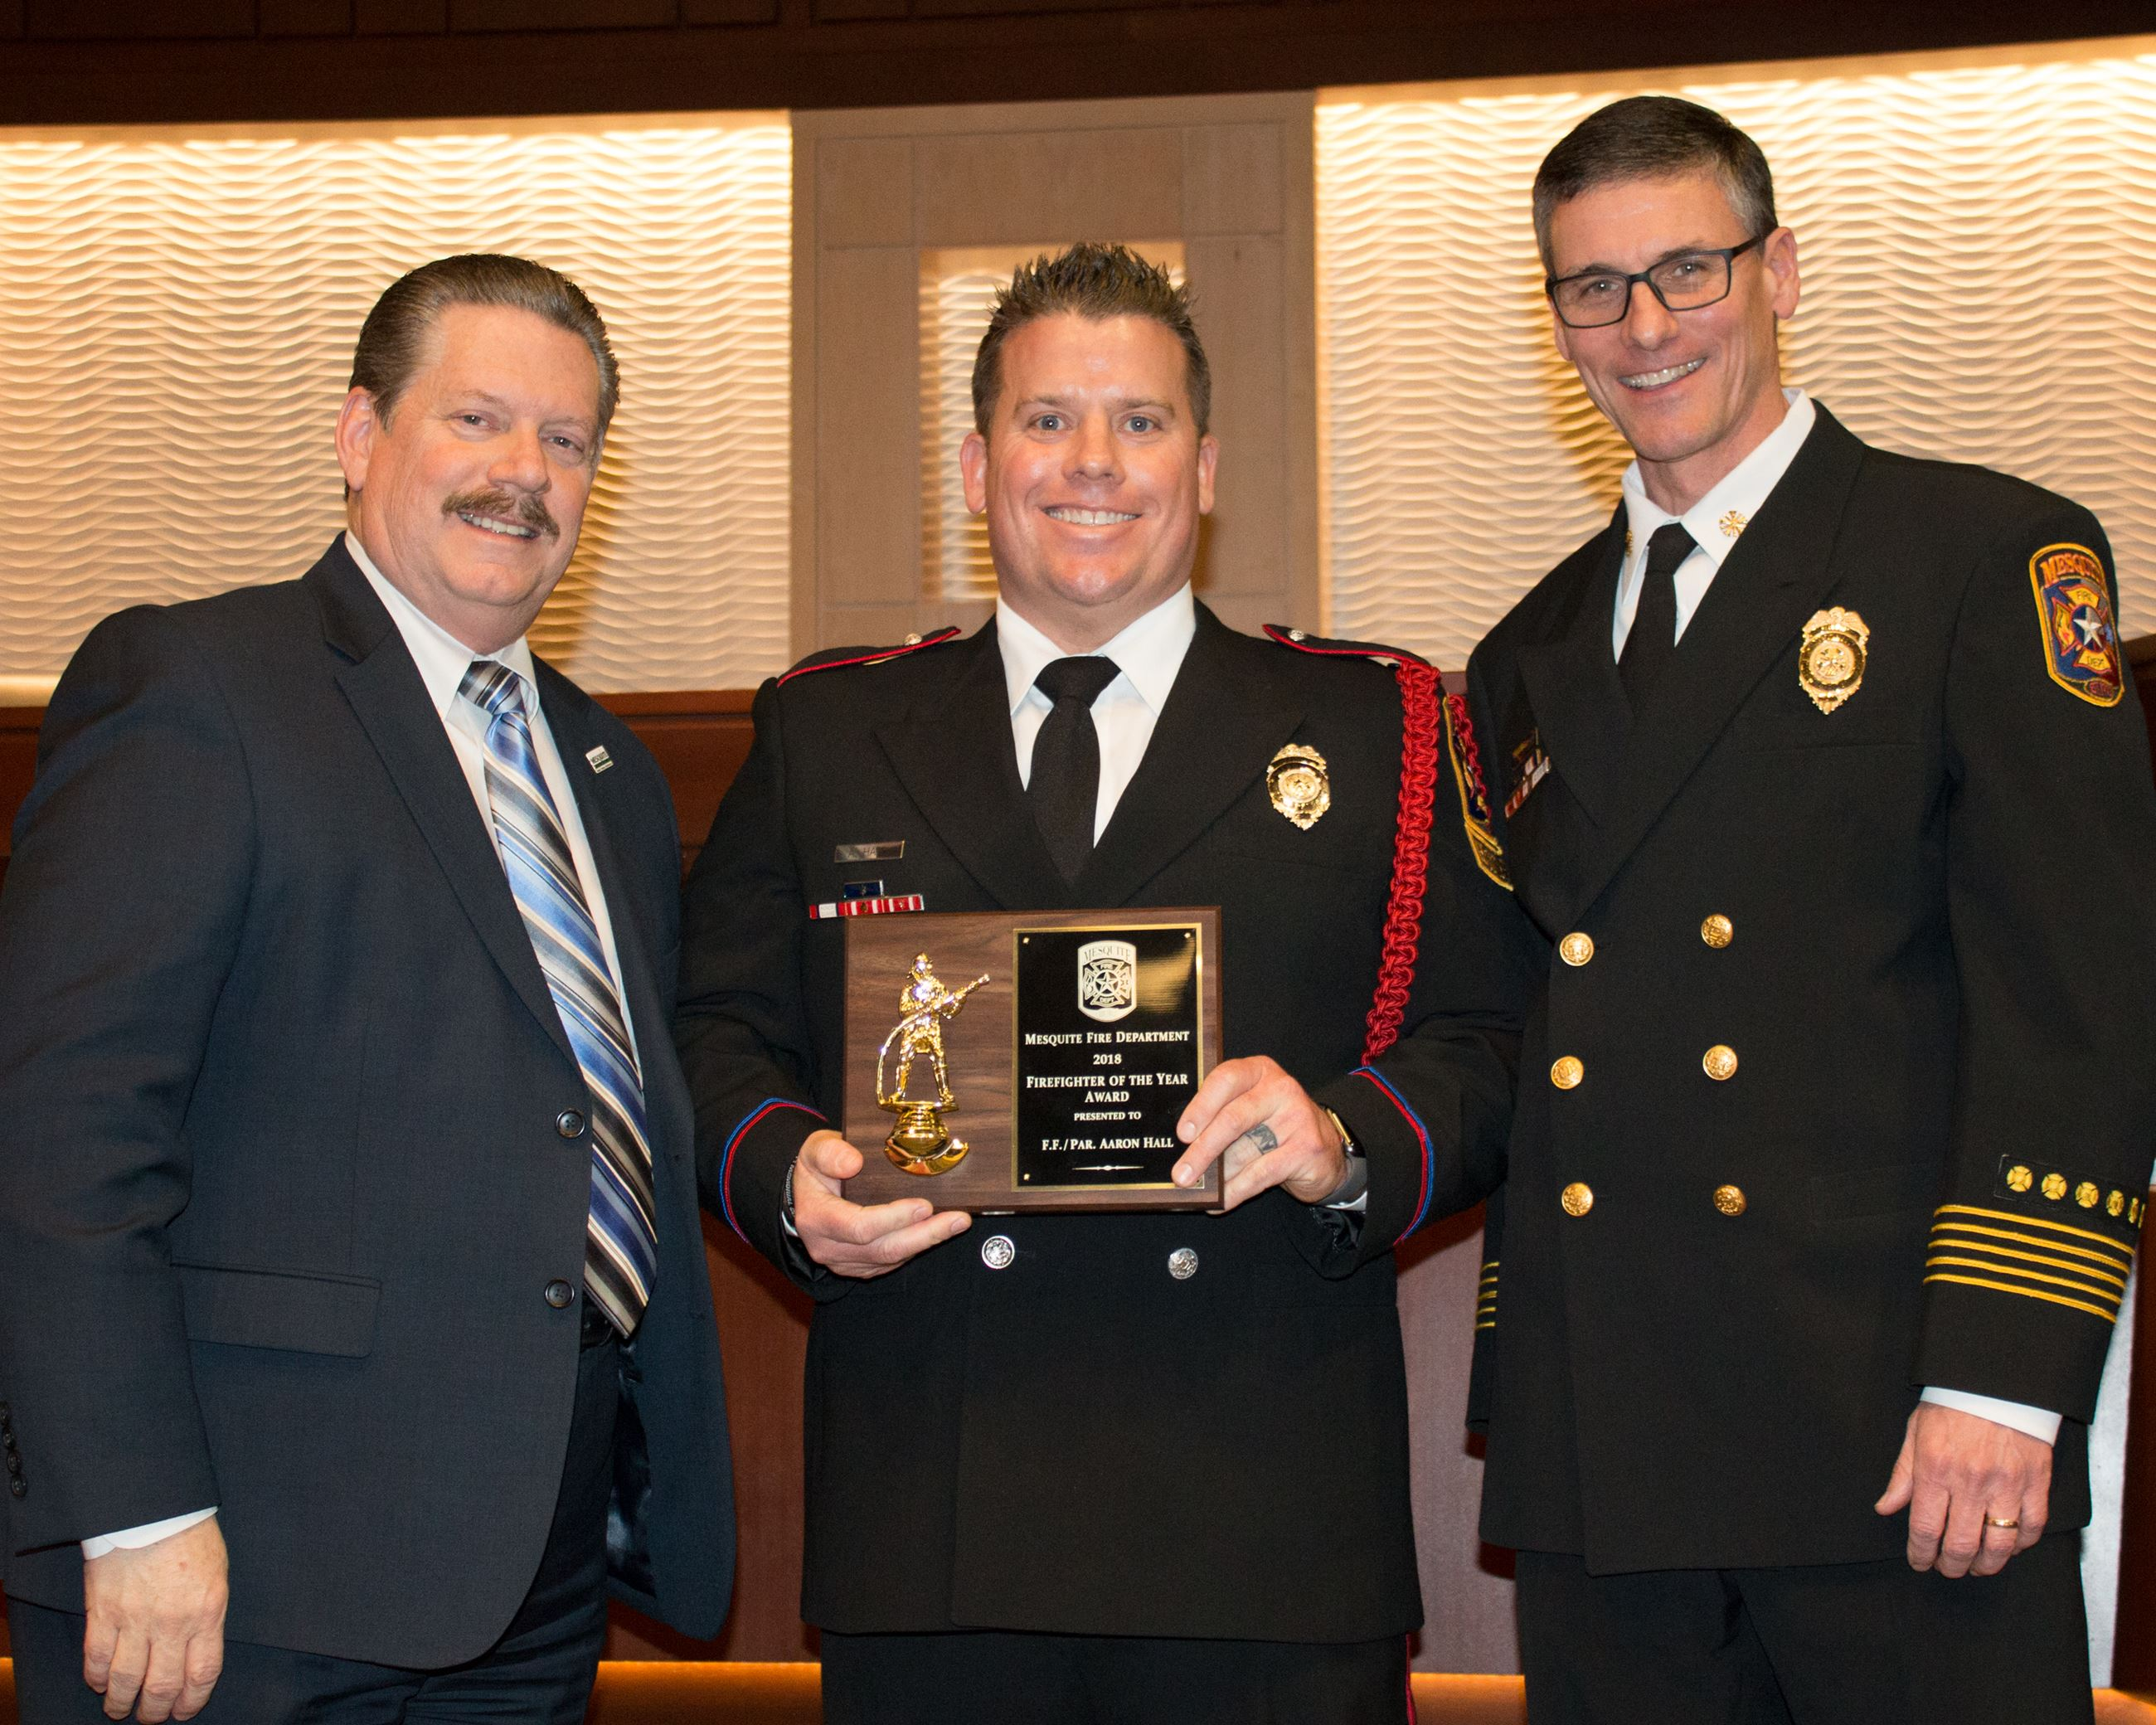 2018 Firefighter of the Year - Aaron Hall